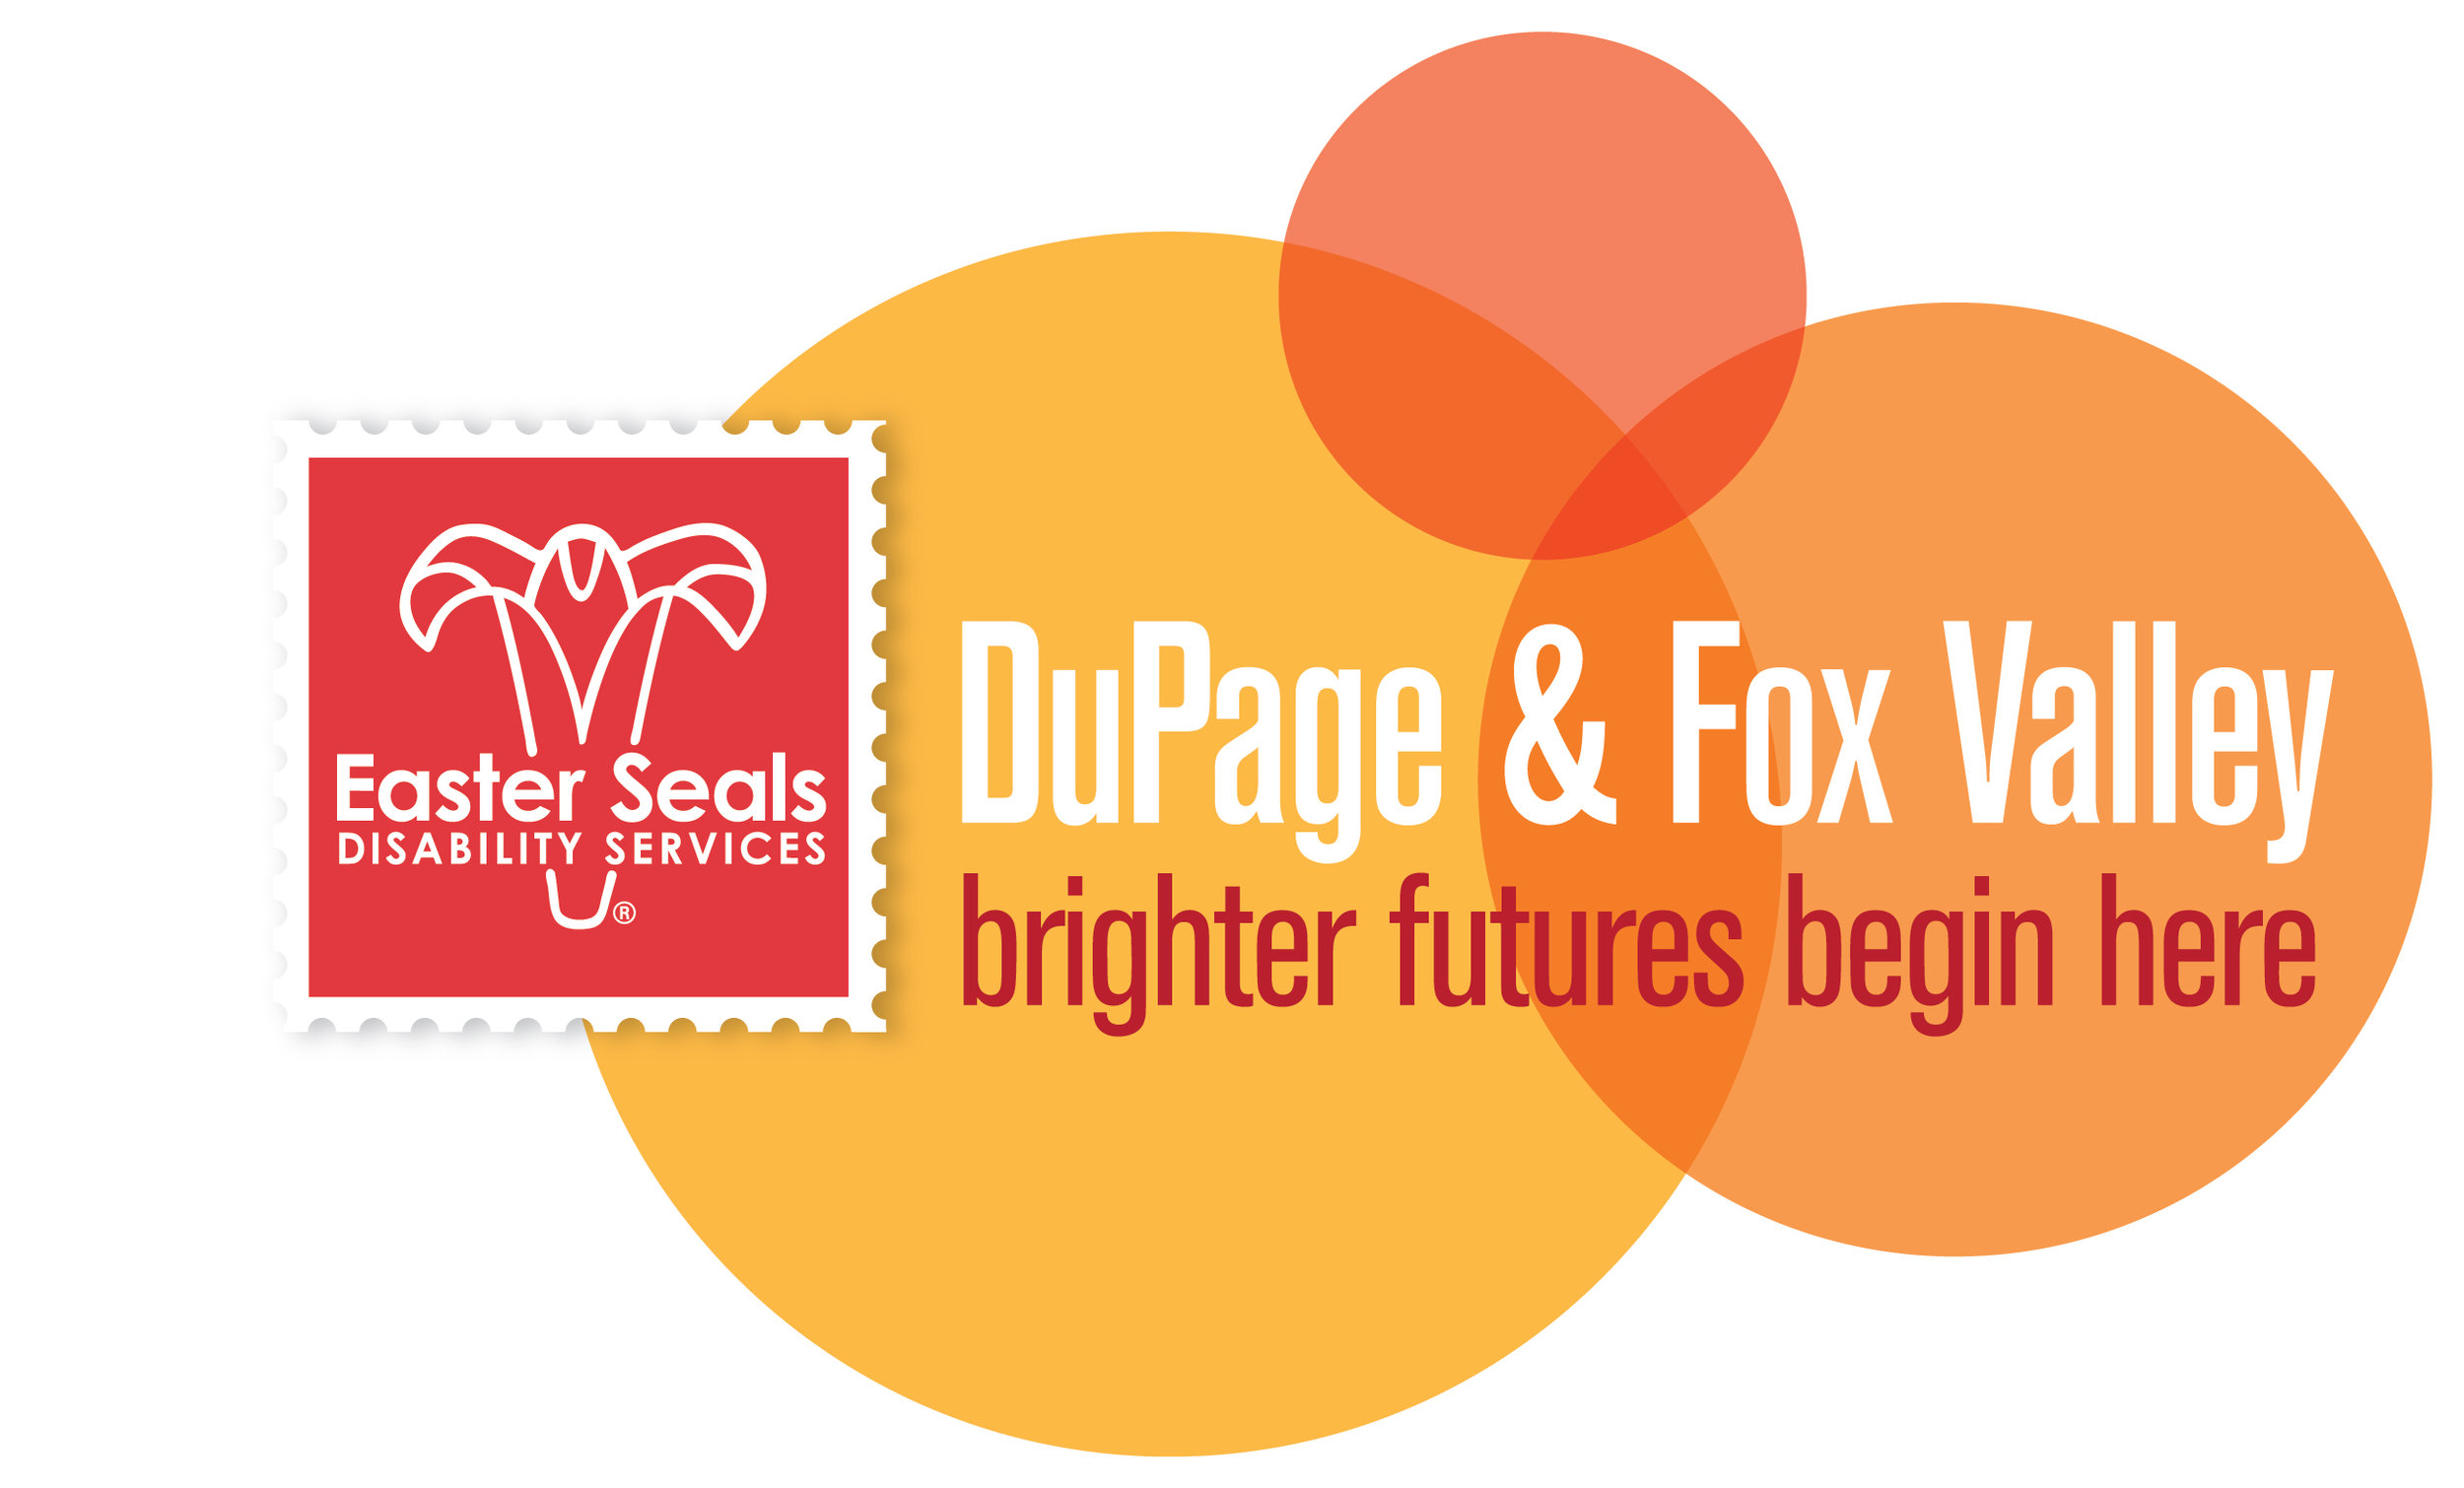 - Easter Seals DuPage & Fox Valley provides life-changing services for  infants, toddlers and children with developmental delays and disabilities, as well as support for their families. Easter Seals' vision is that all children receive the developmental services they need to live their best lives.